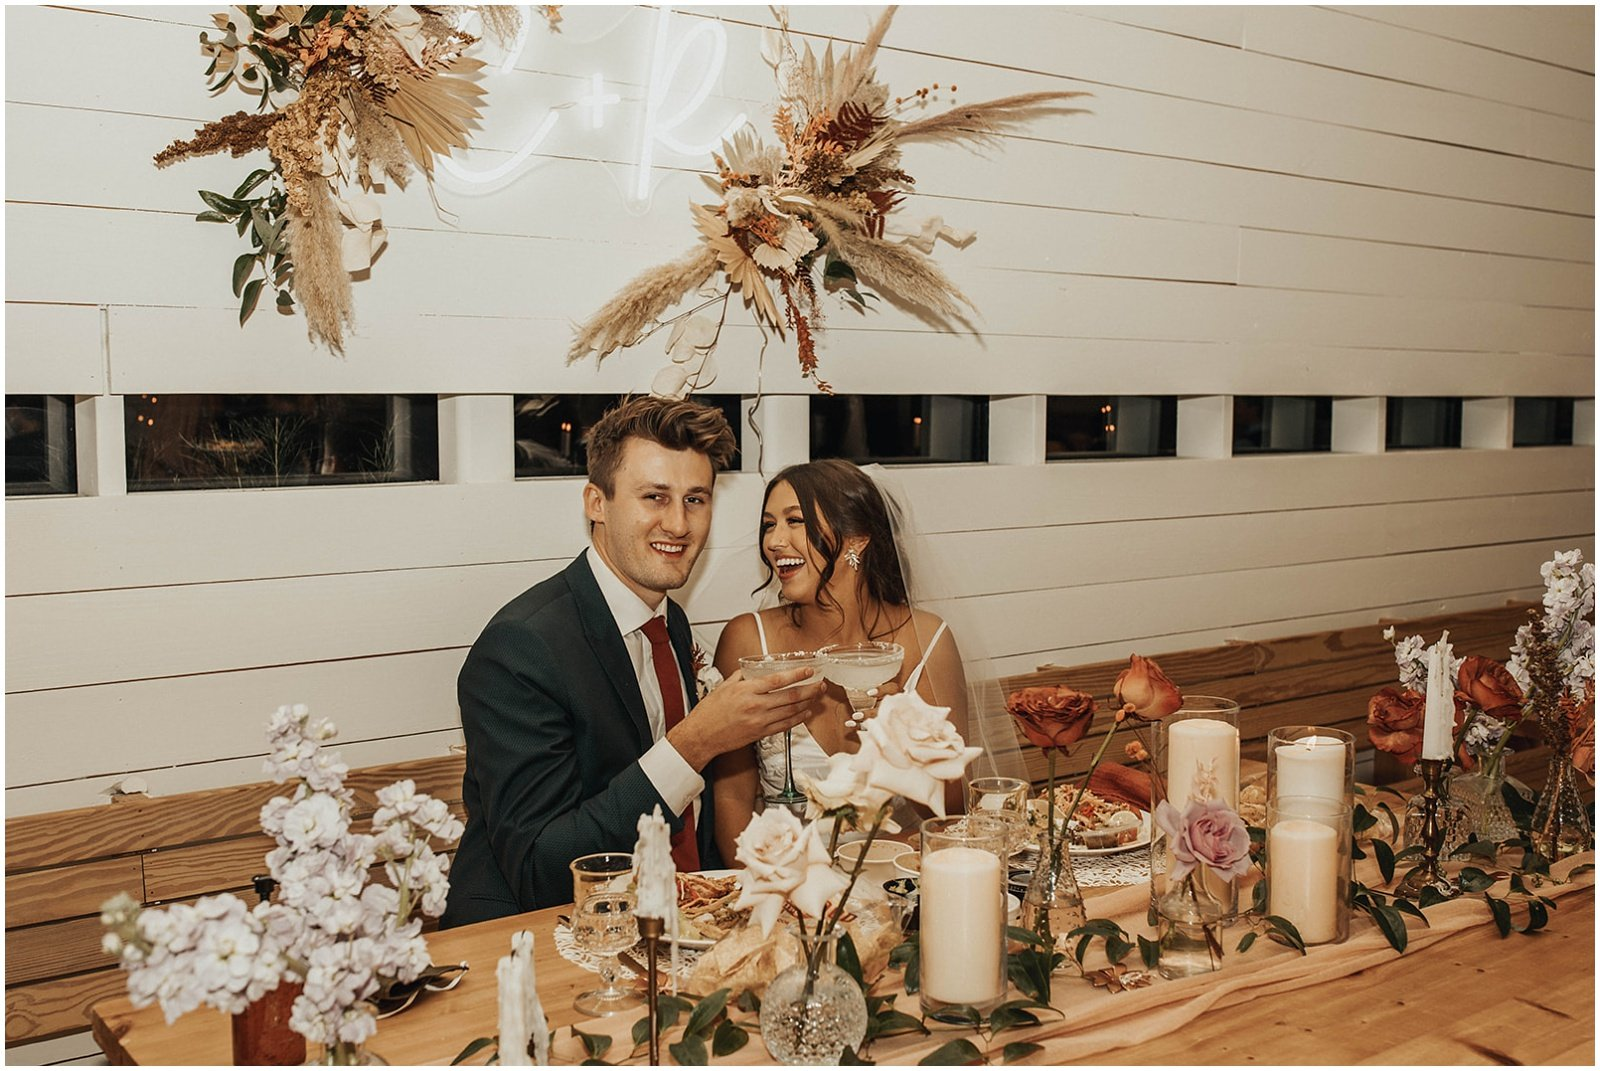 bride and groom sitting together at sweetheart table